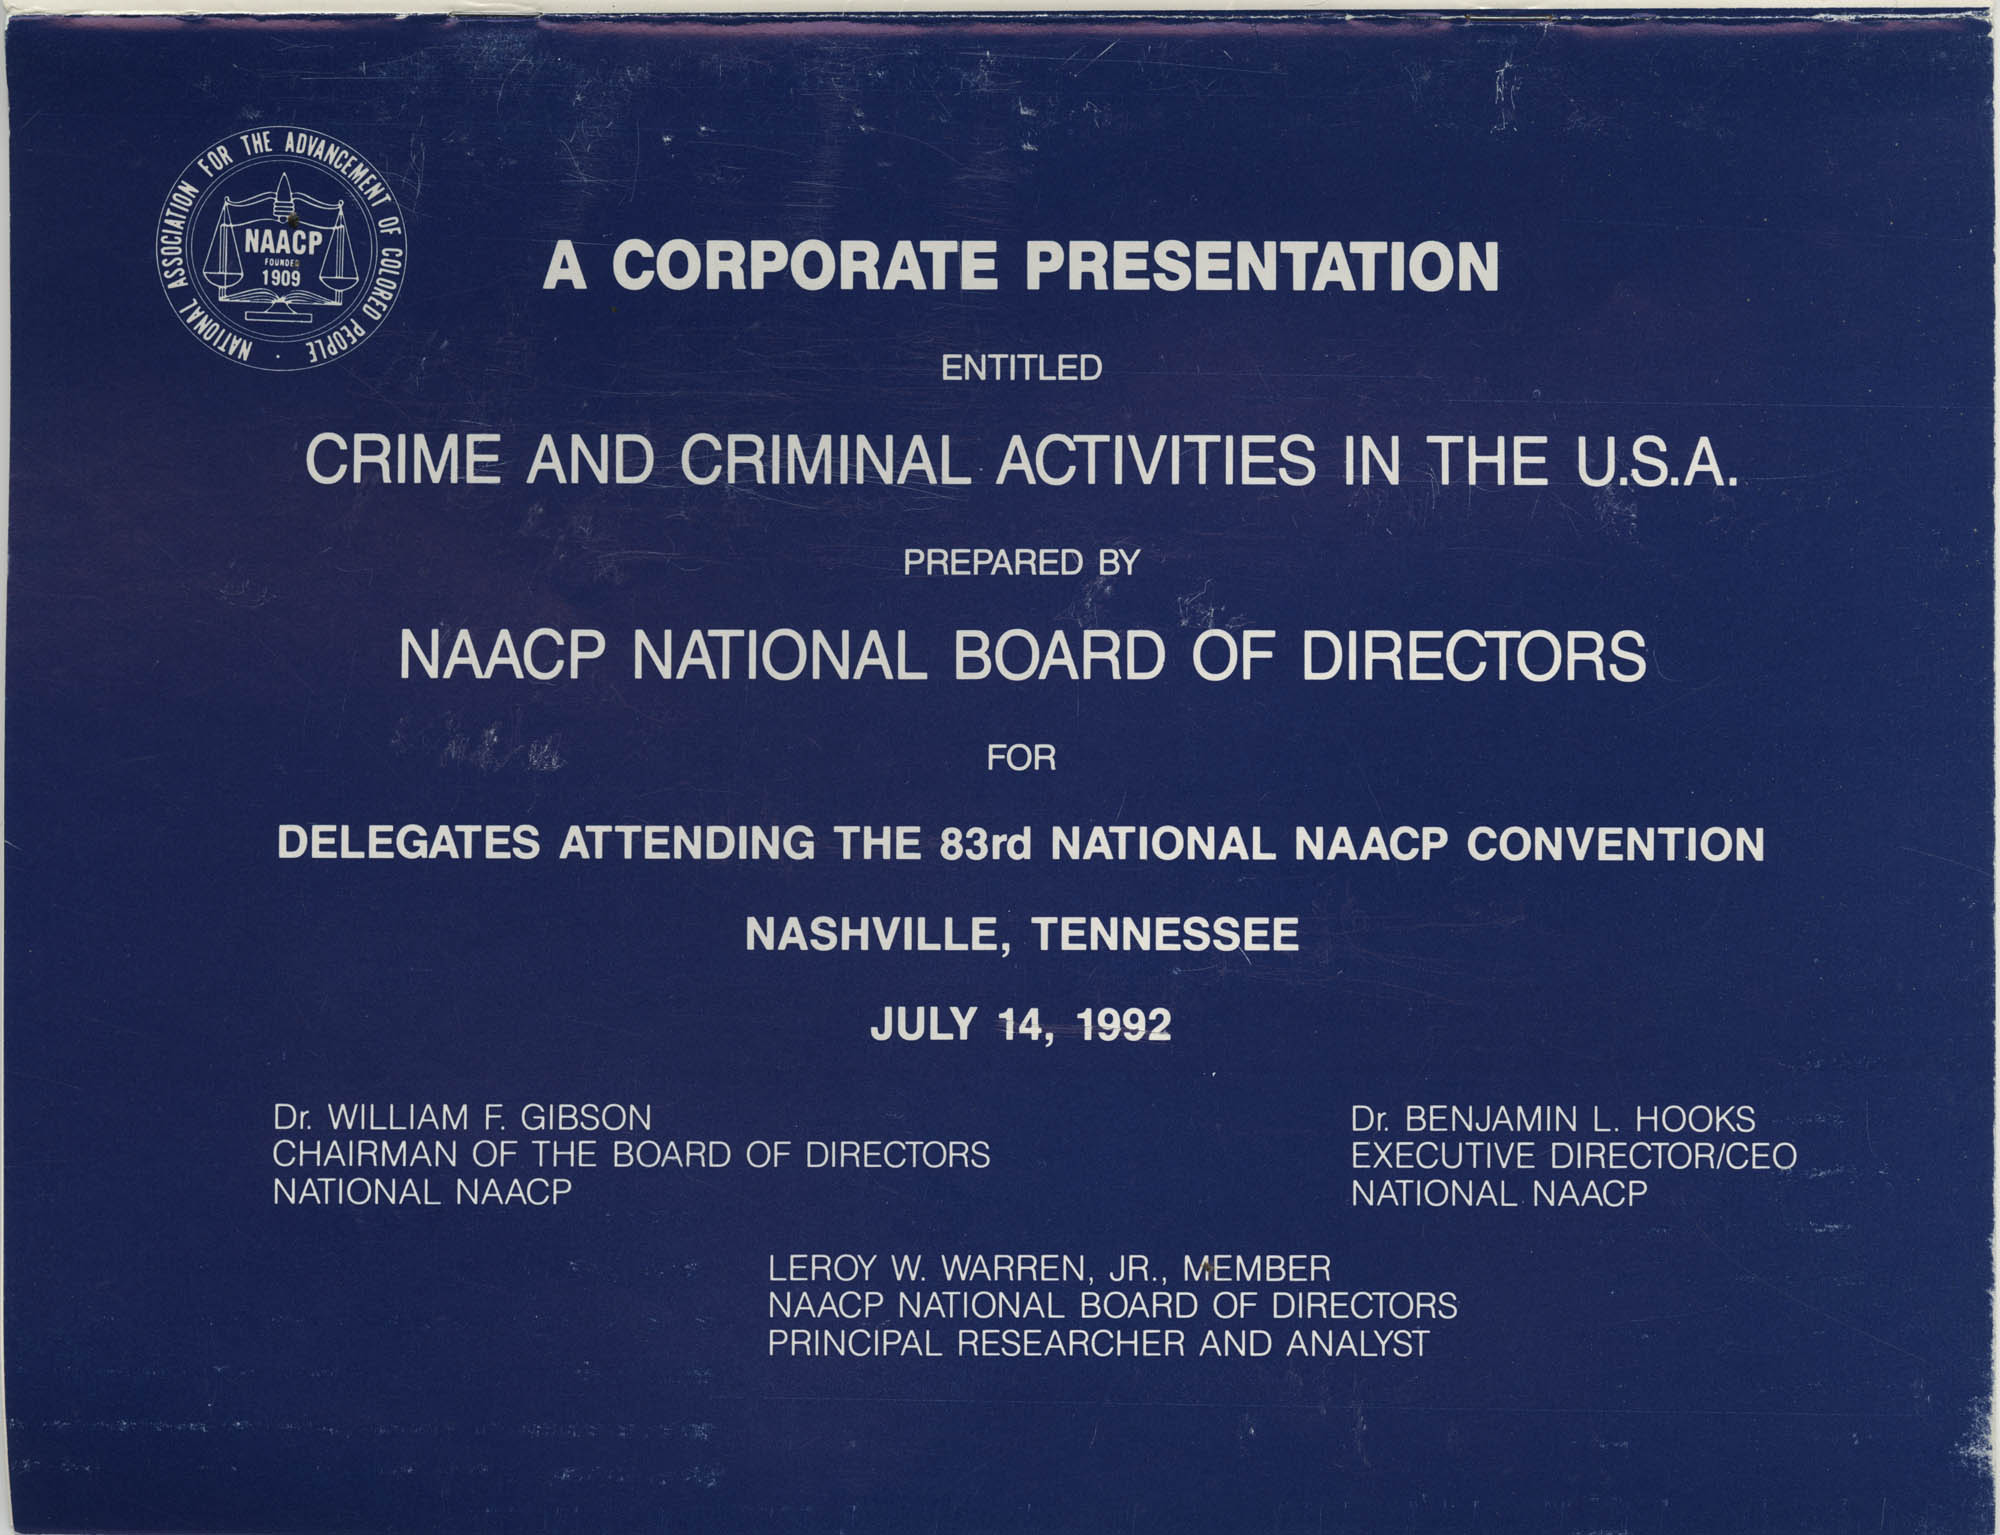 Crime and Criminal Activities in the U.S.A., NAACP National Board of Directors, Front Cover